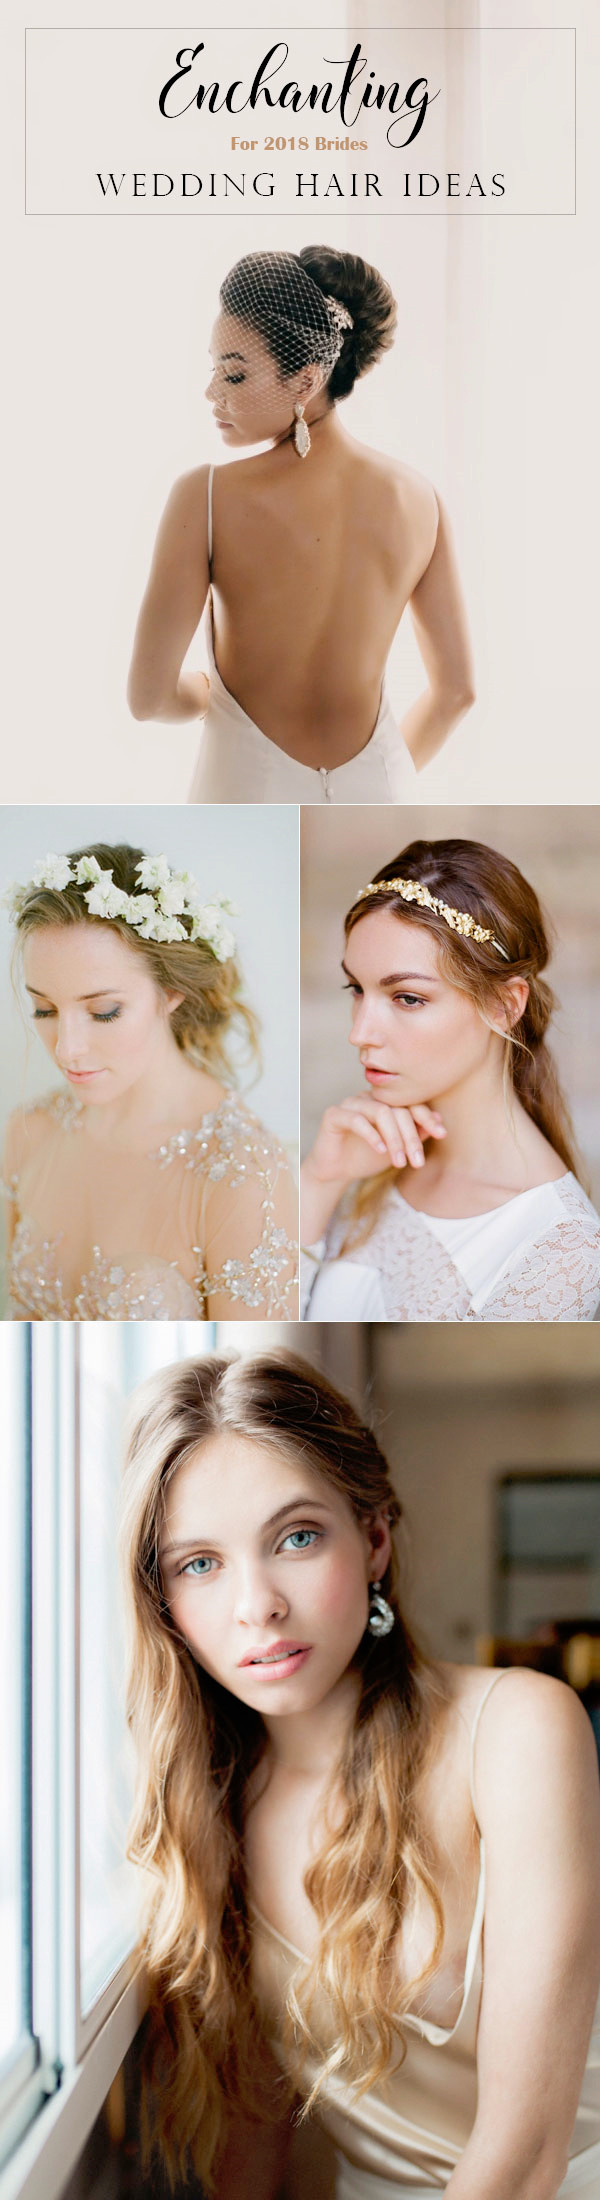 20 drop-dead bridal hair styles & wedding accessories trends